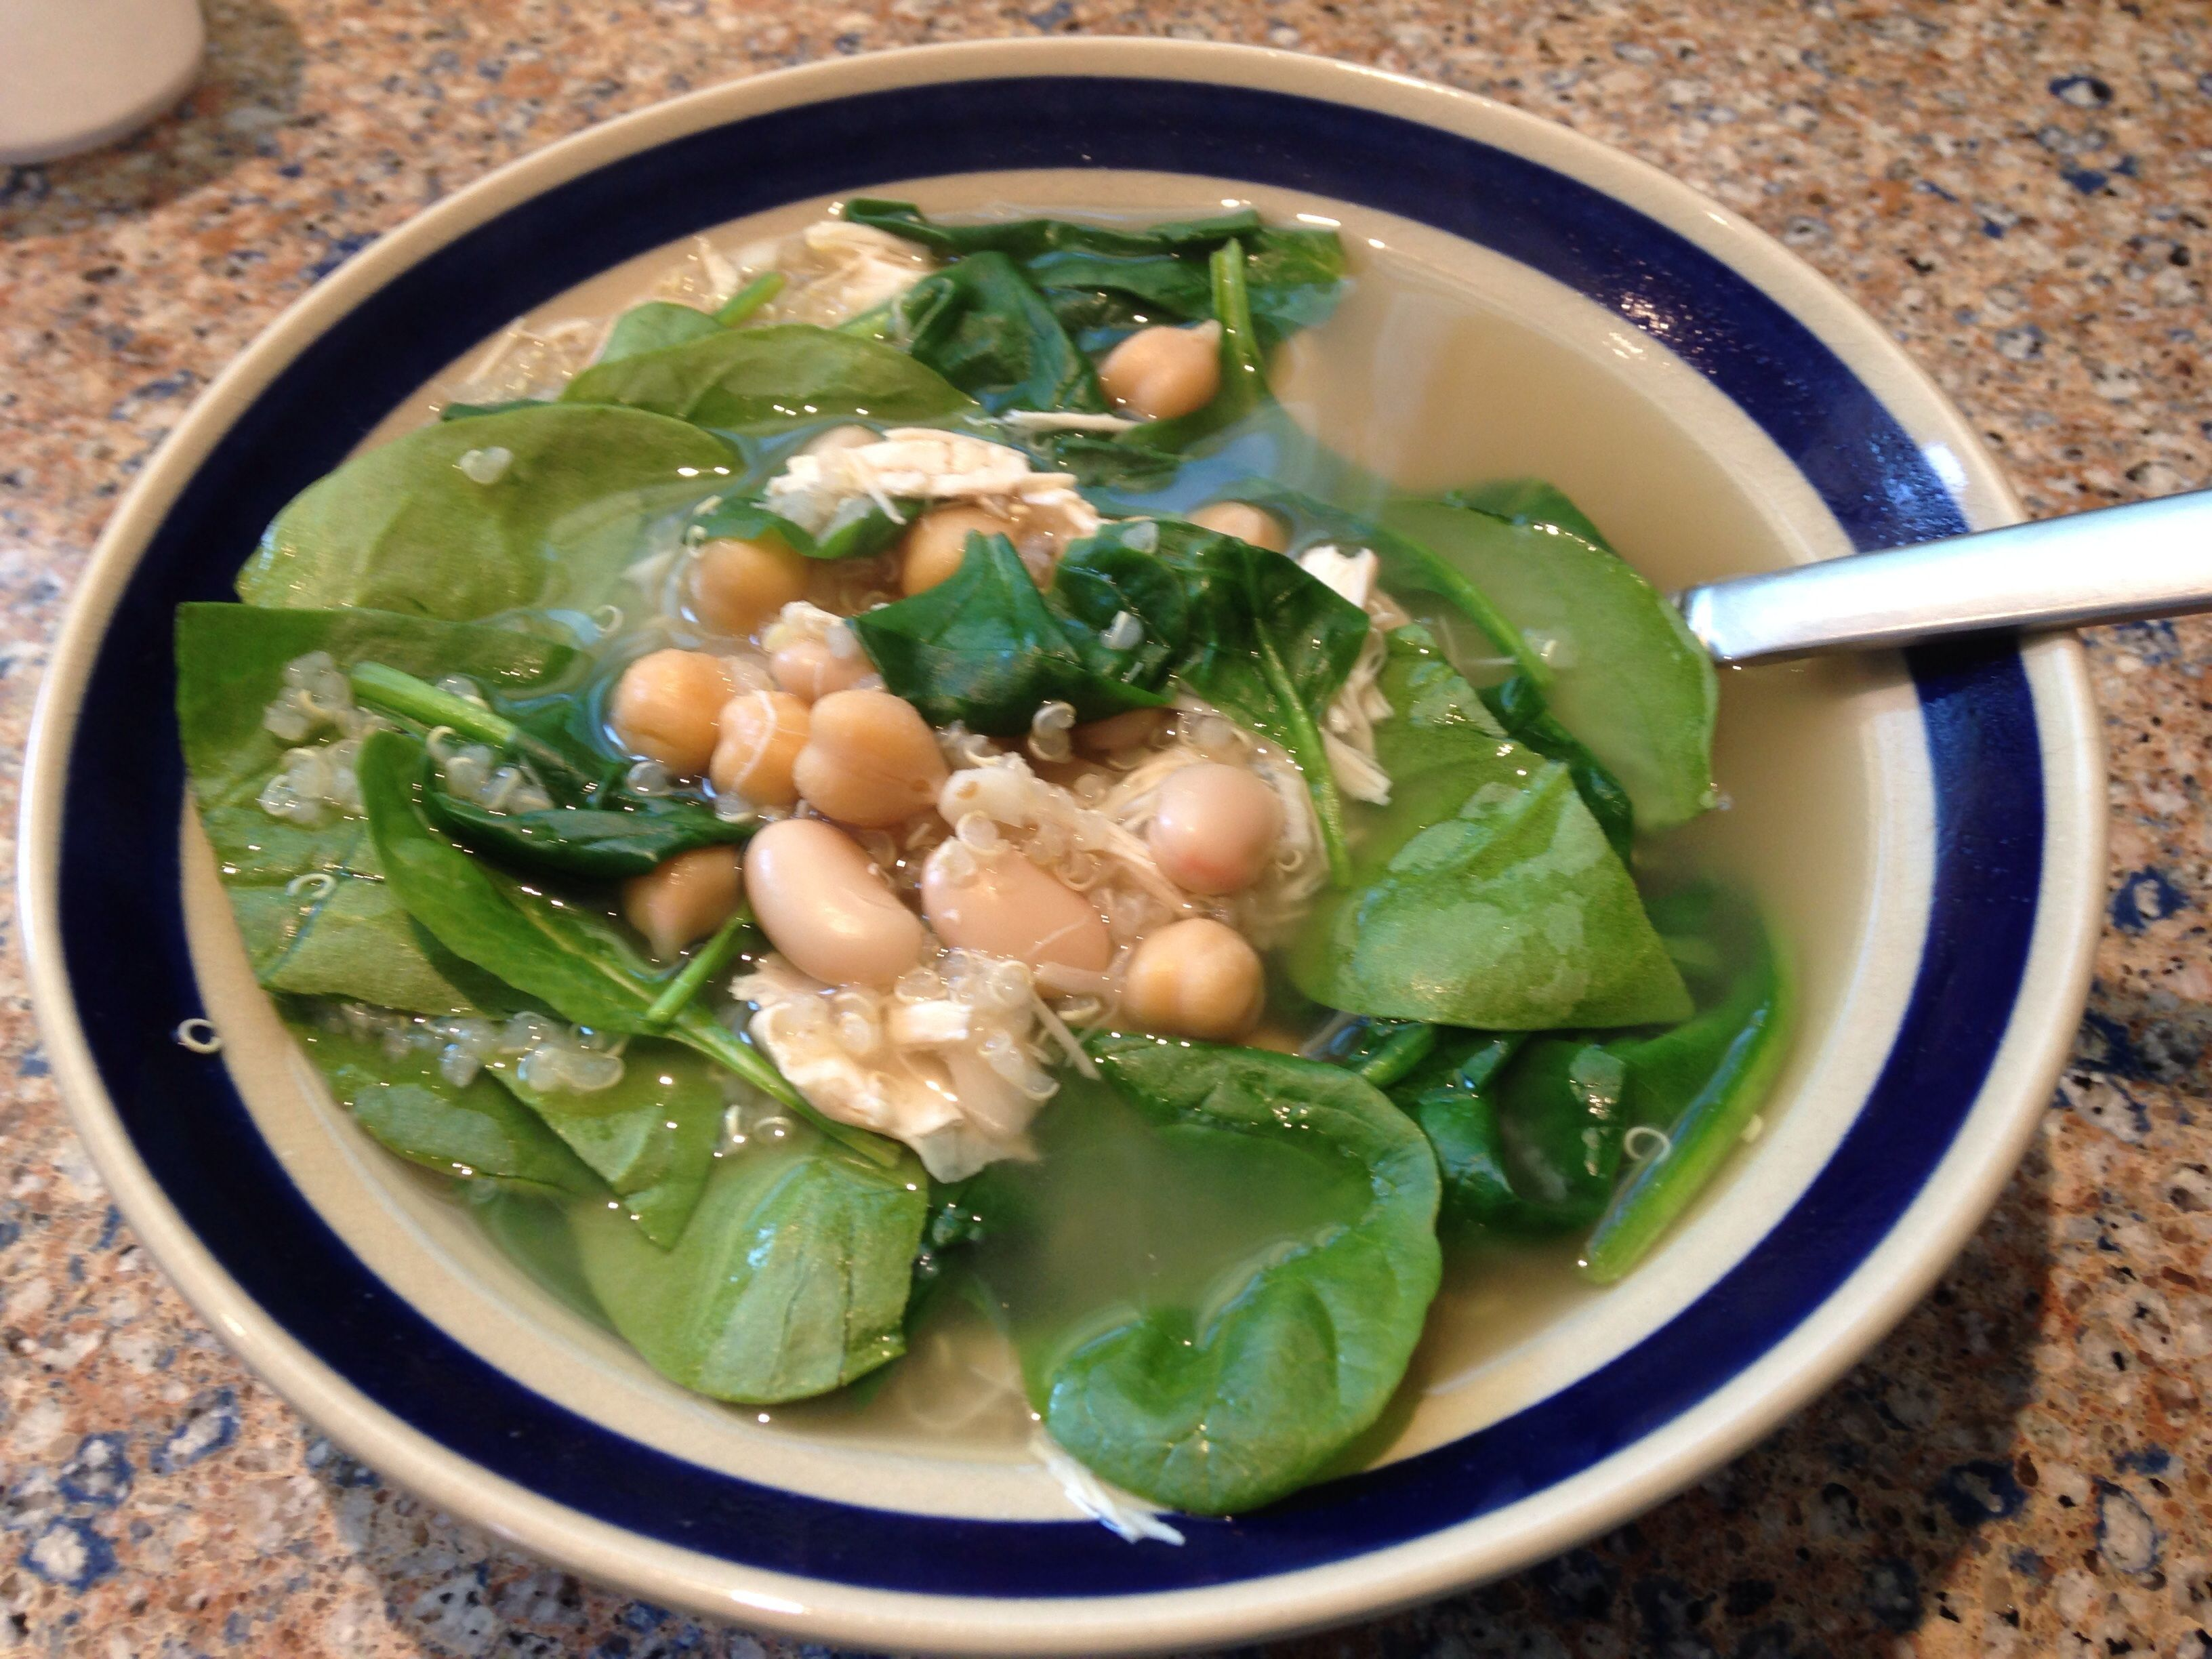 Simple Bean, Spinach, and Chicken Soup.  This is a great go-to Fall dinner!  It takes about 5 minutes to prep, and is healthy and filling.  For more healthy recipes follow me on Pinterest and subscribe to my blog at www.GreatFoodLifestyle.com.